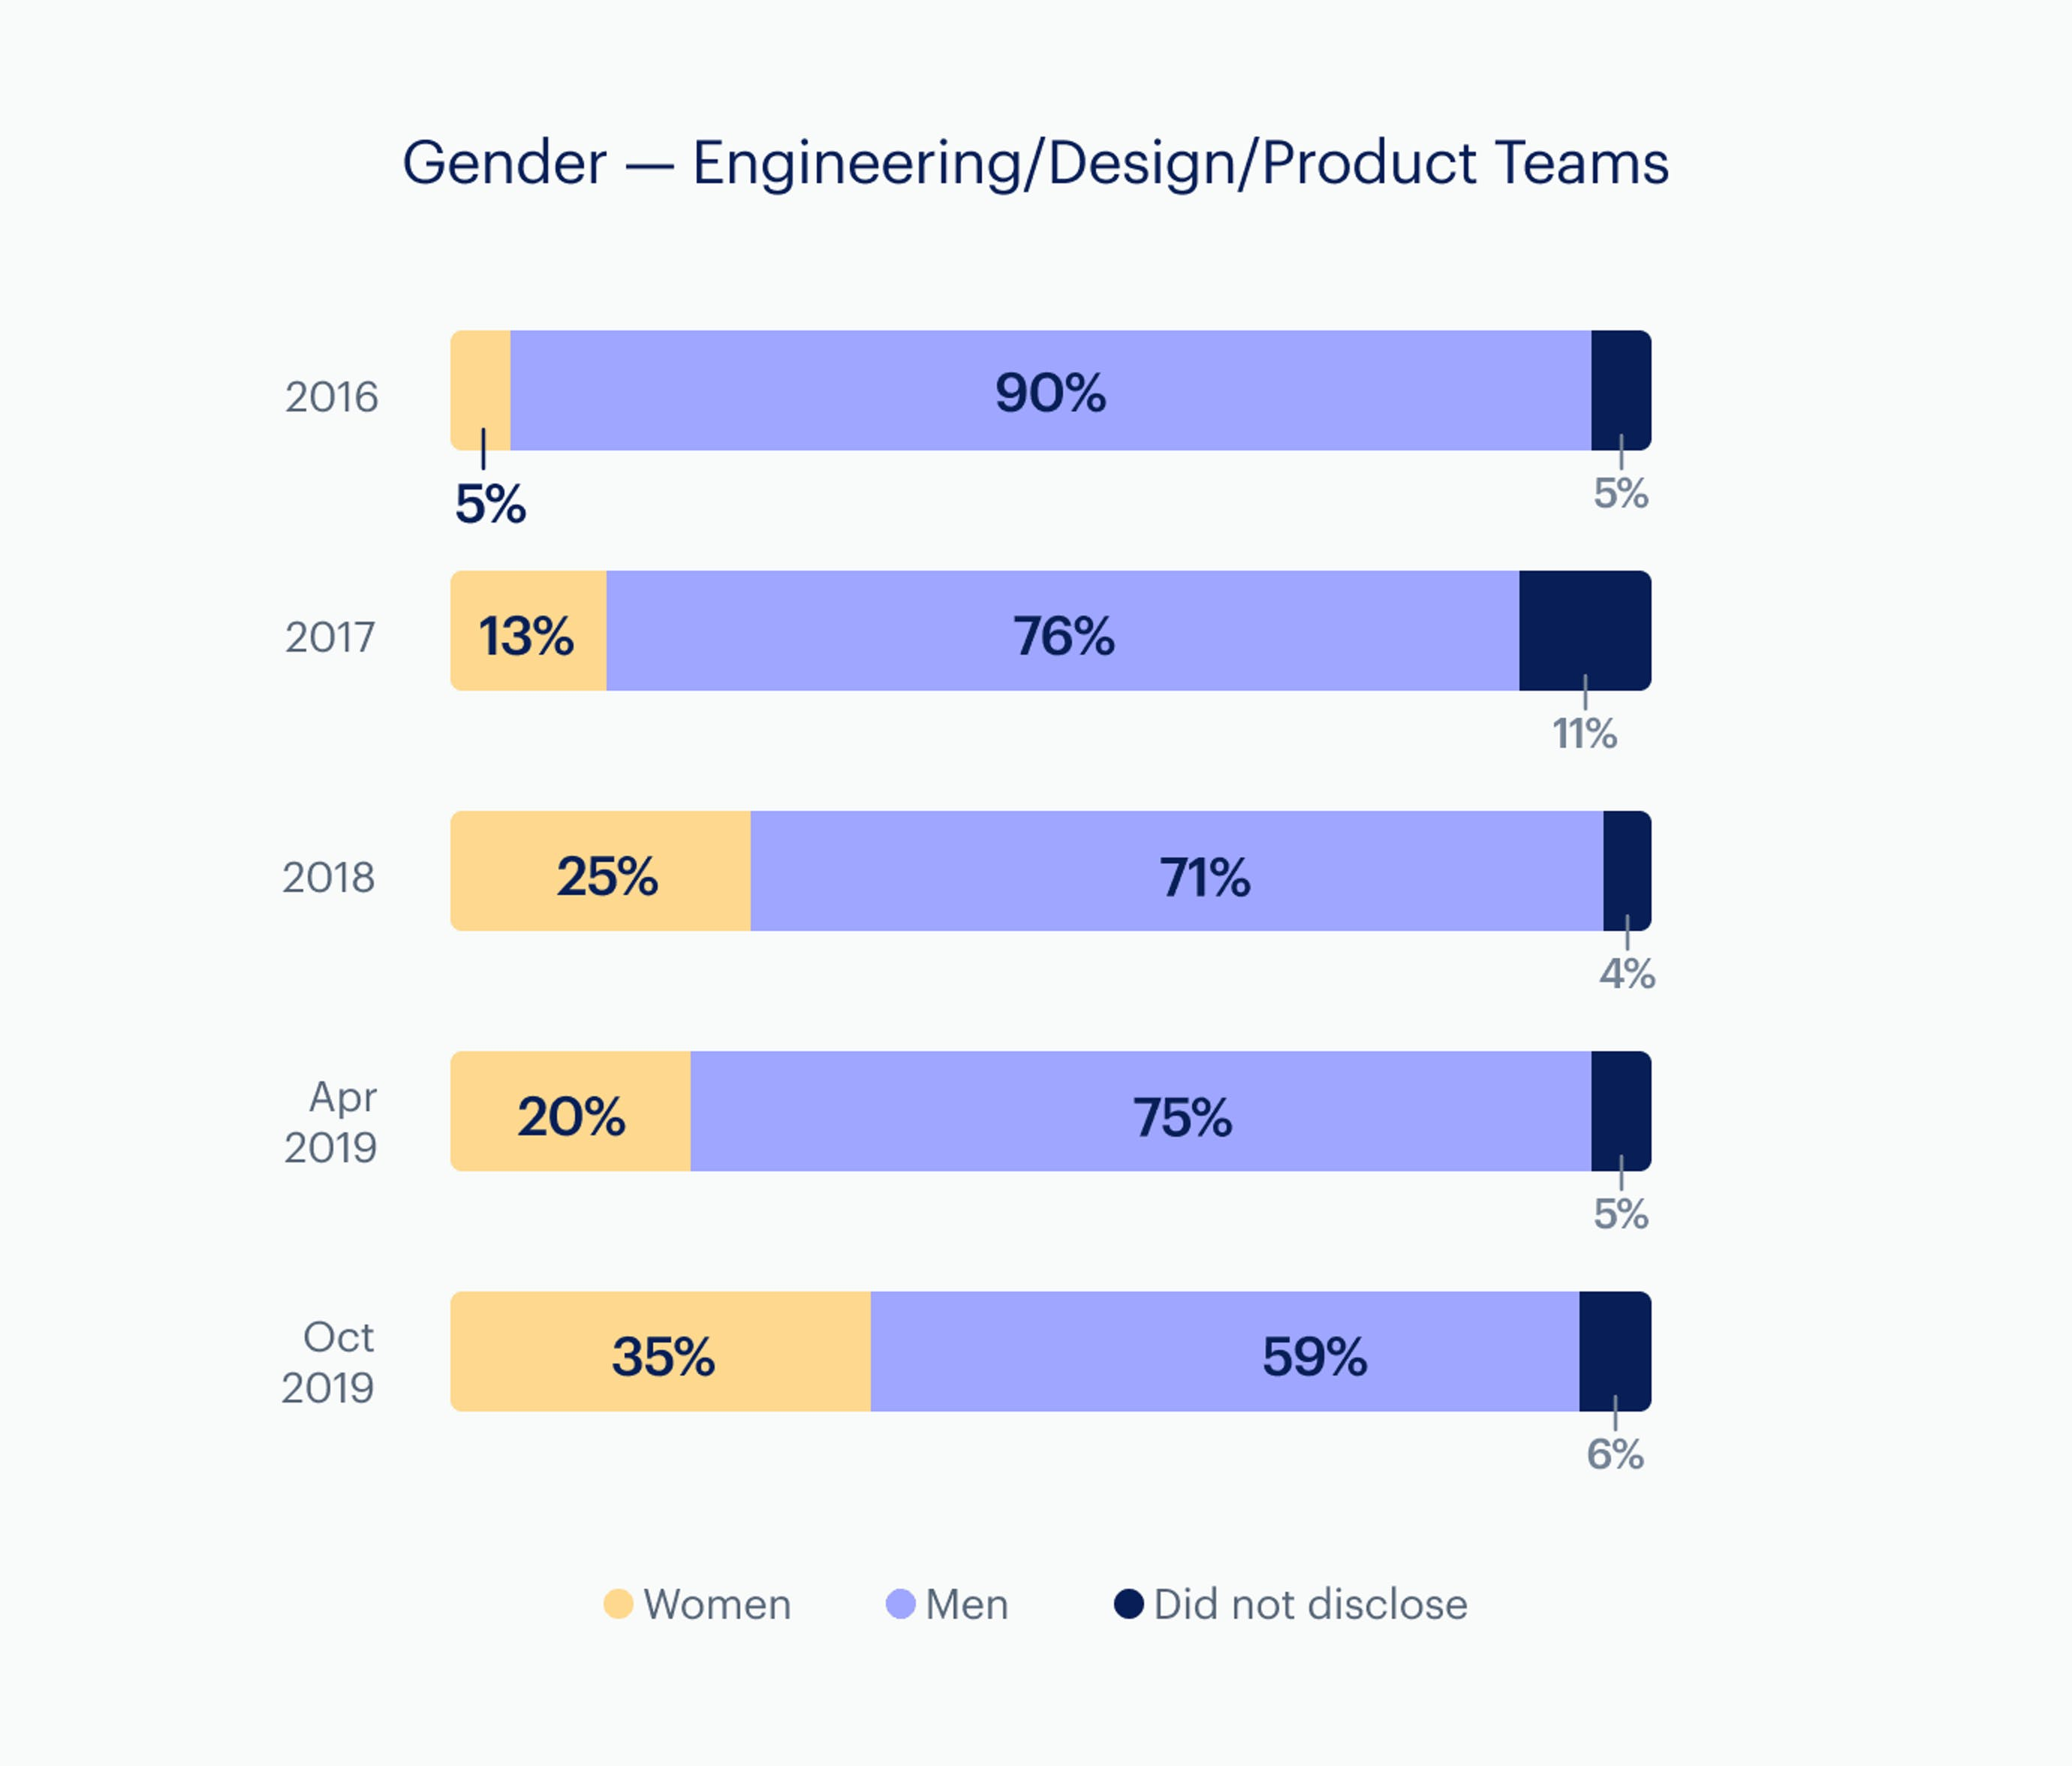 Infographic: Gender on Engineering, Design, & Product